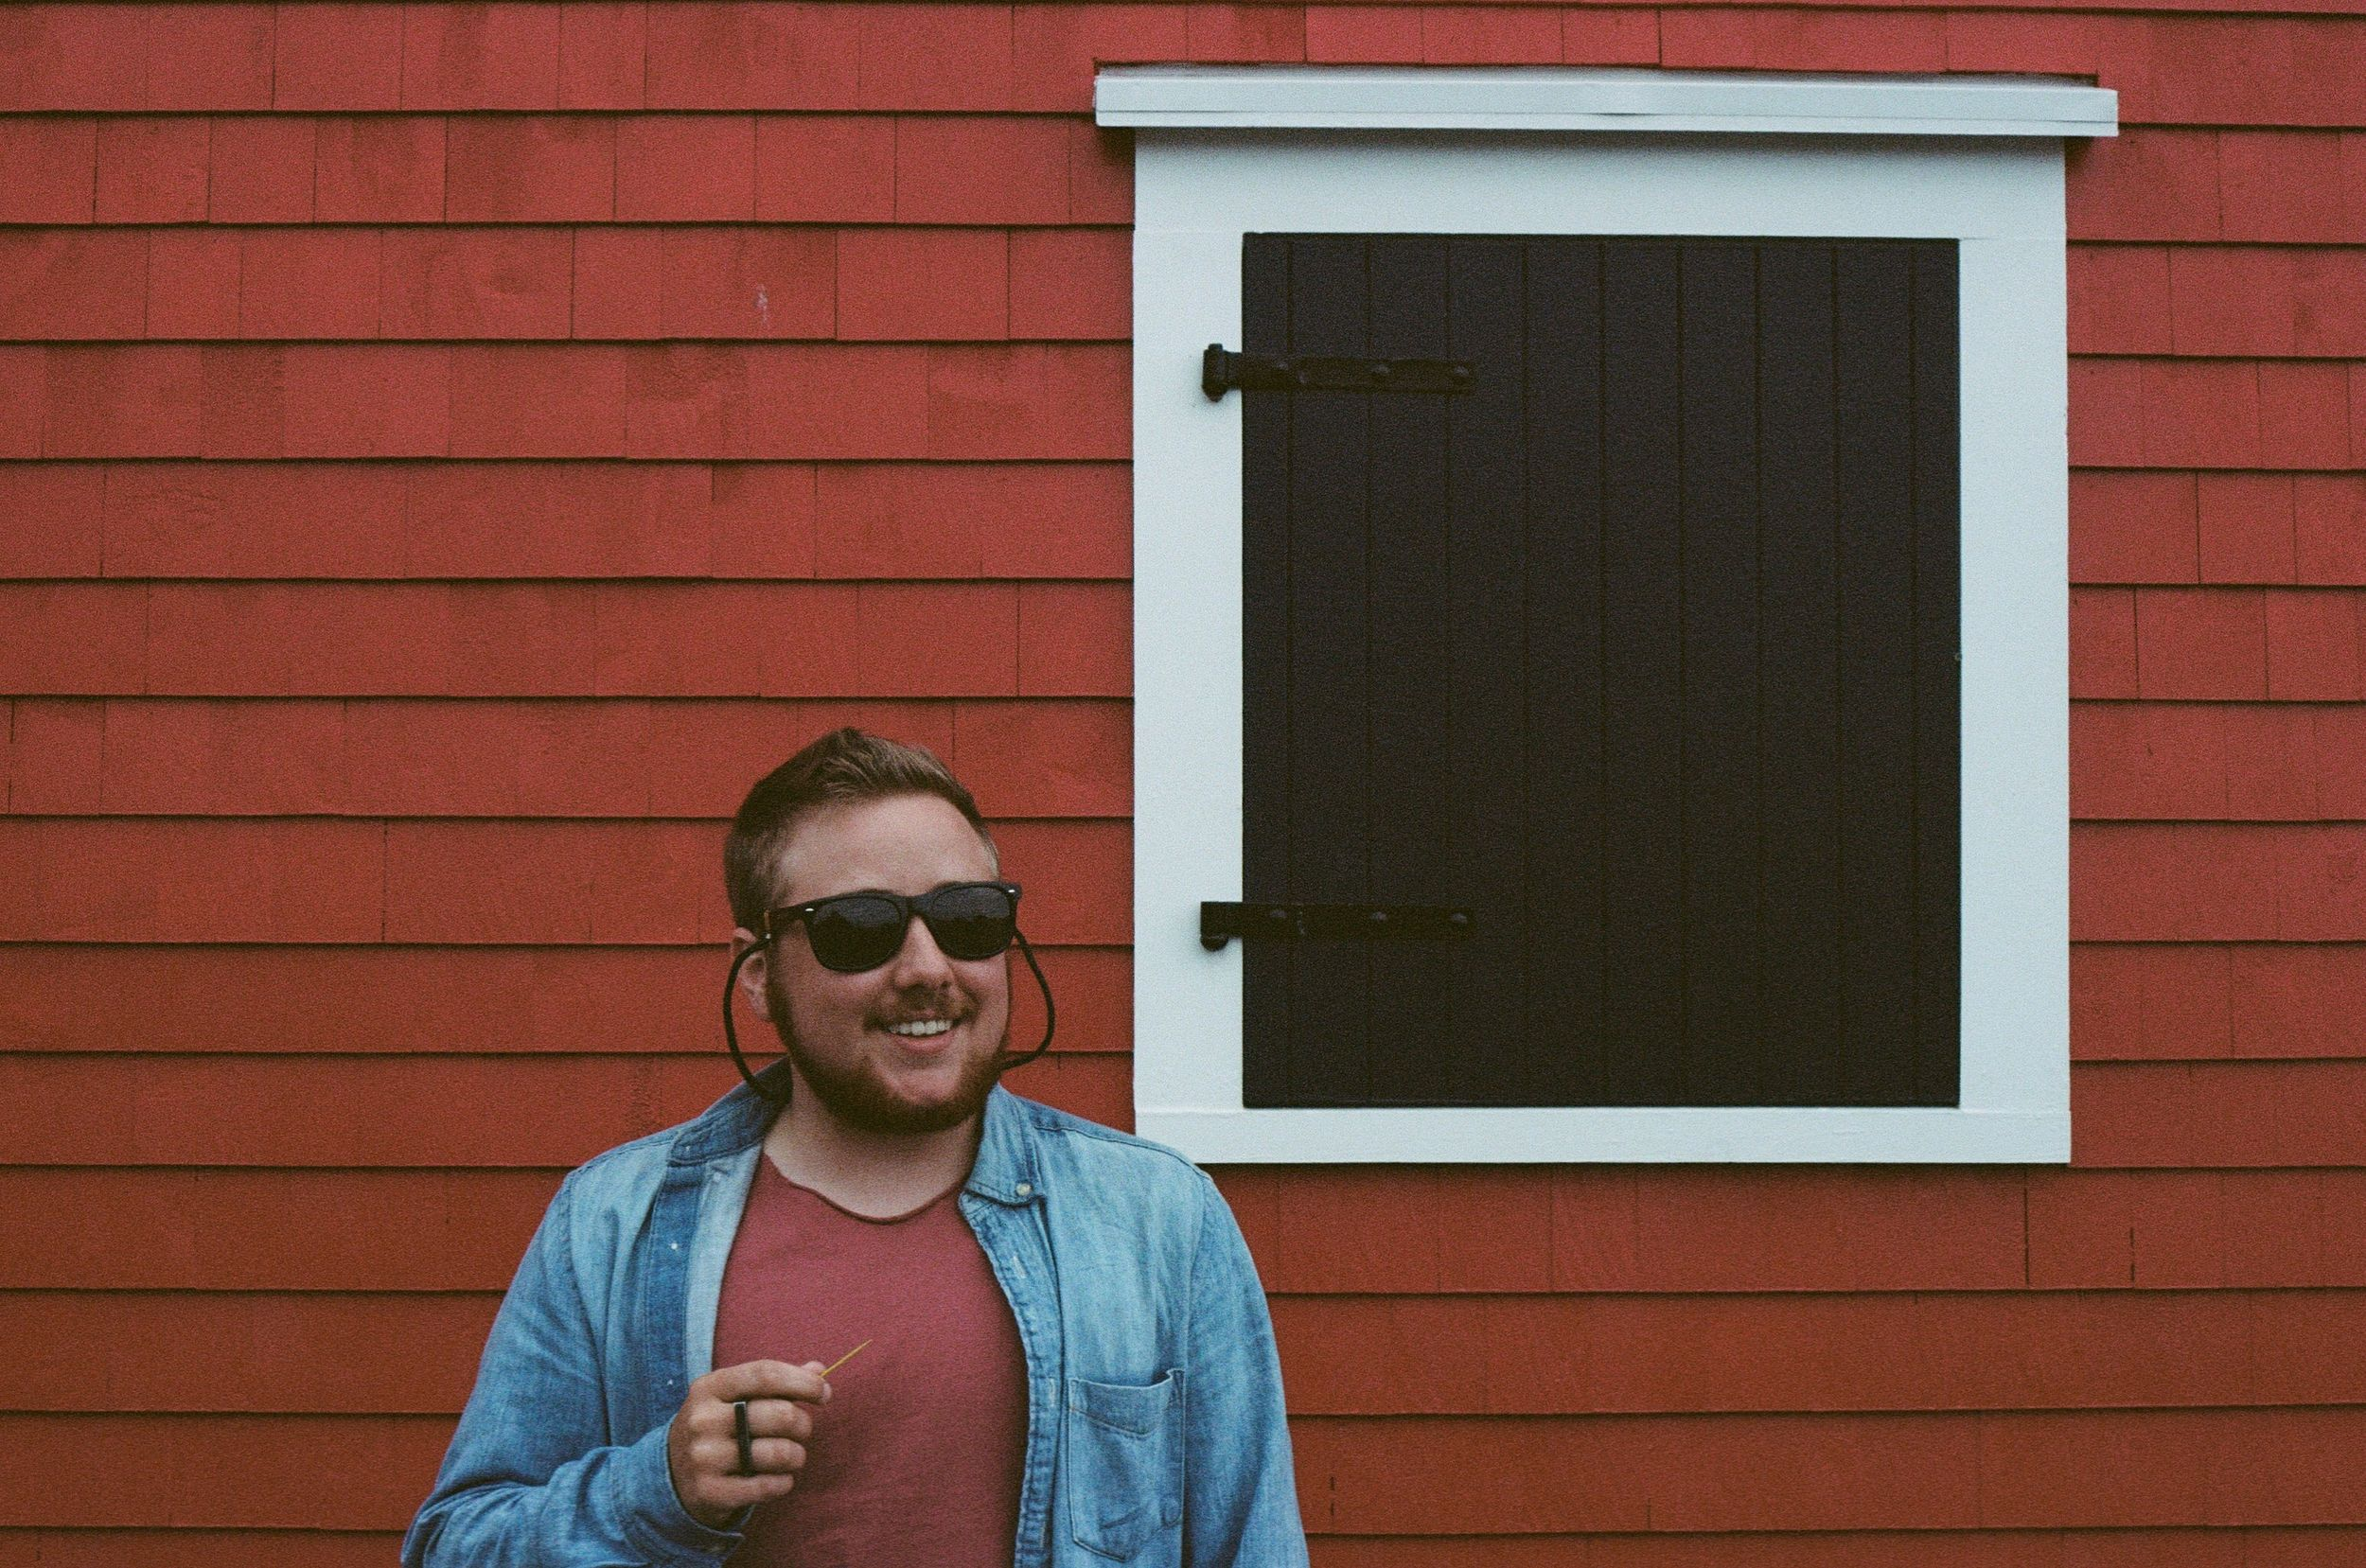 smiling man wearing blue denim shirt and sunglasses in front of red building 35mm film